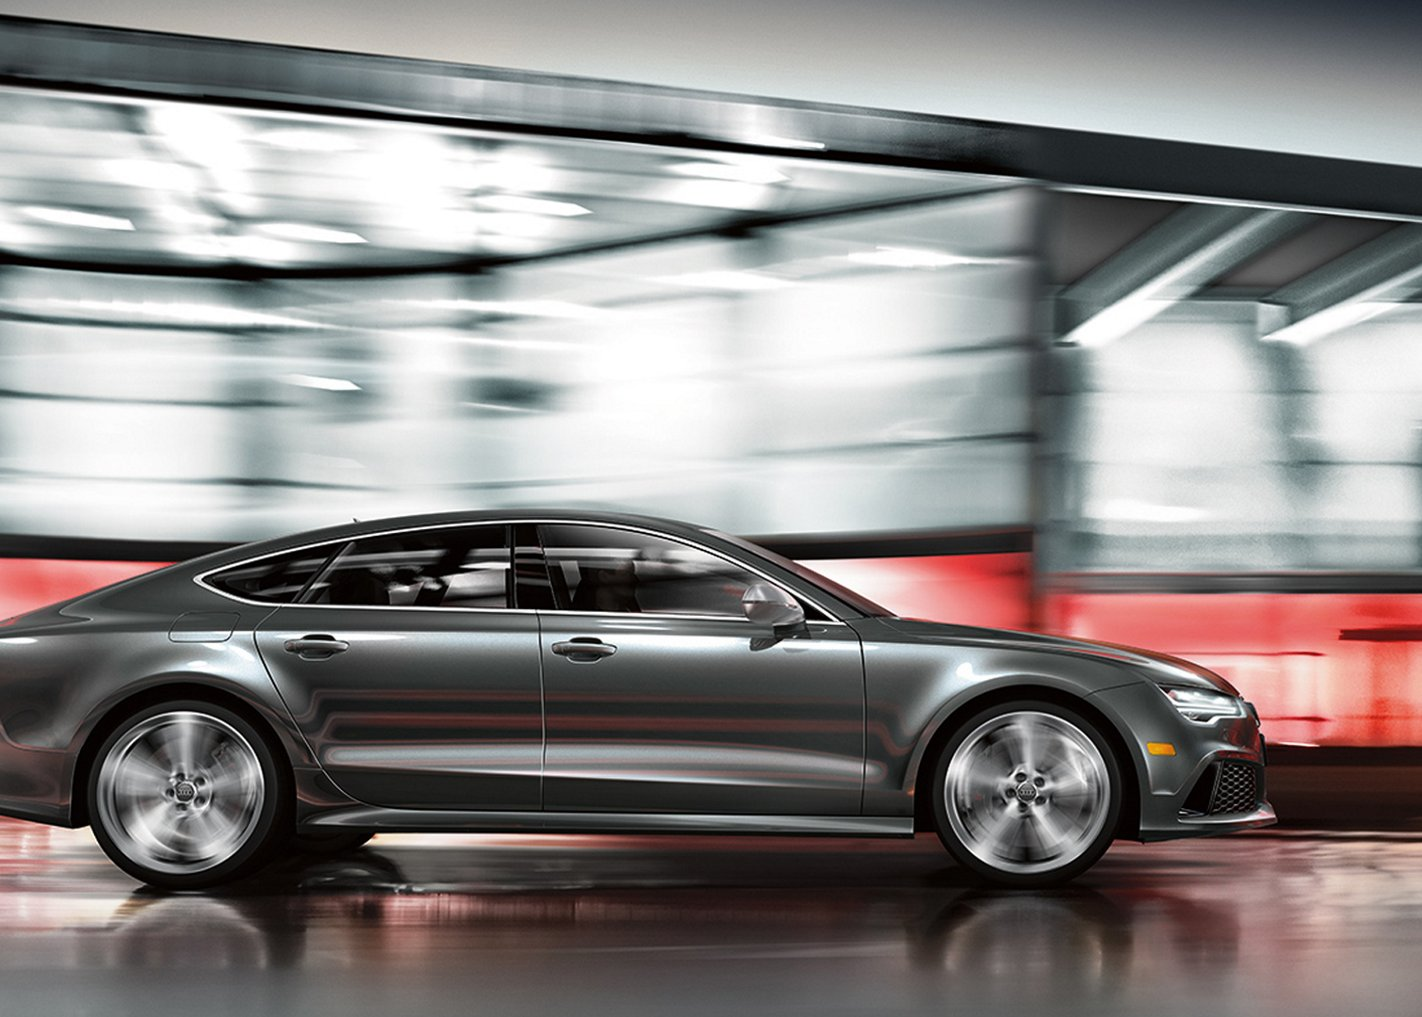 New Audi RS 7 Exterior image 1